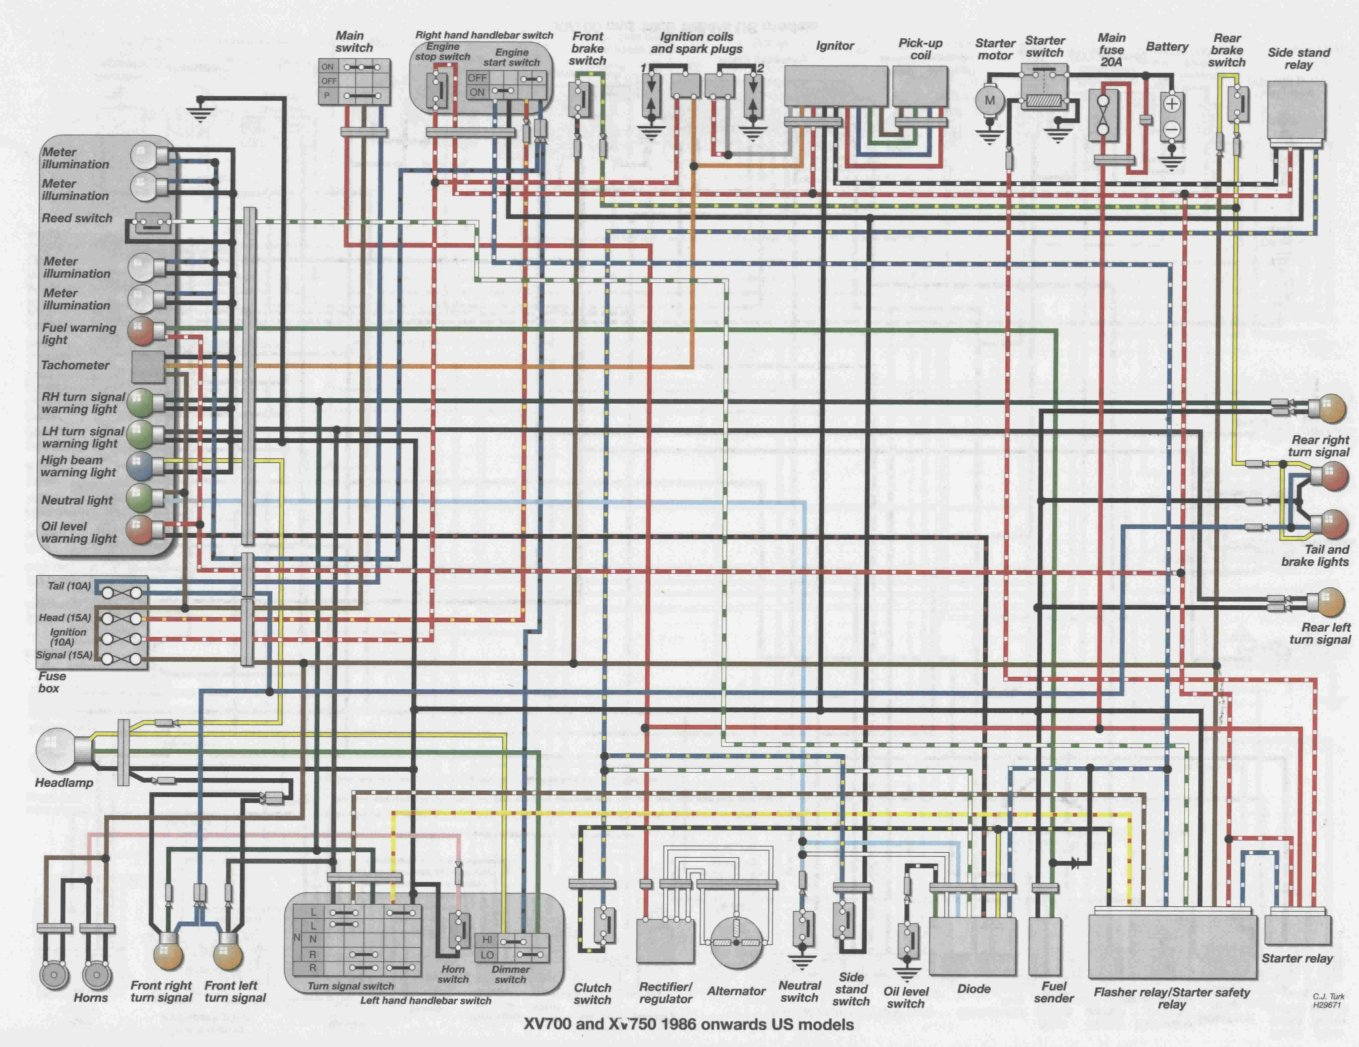 hight resolution of western star truck wiring diagram western free engine image for user manual download yamaha wiring harness